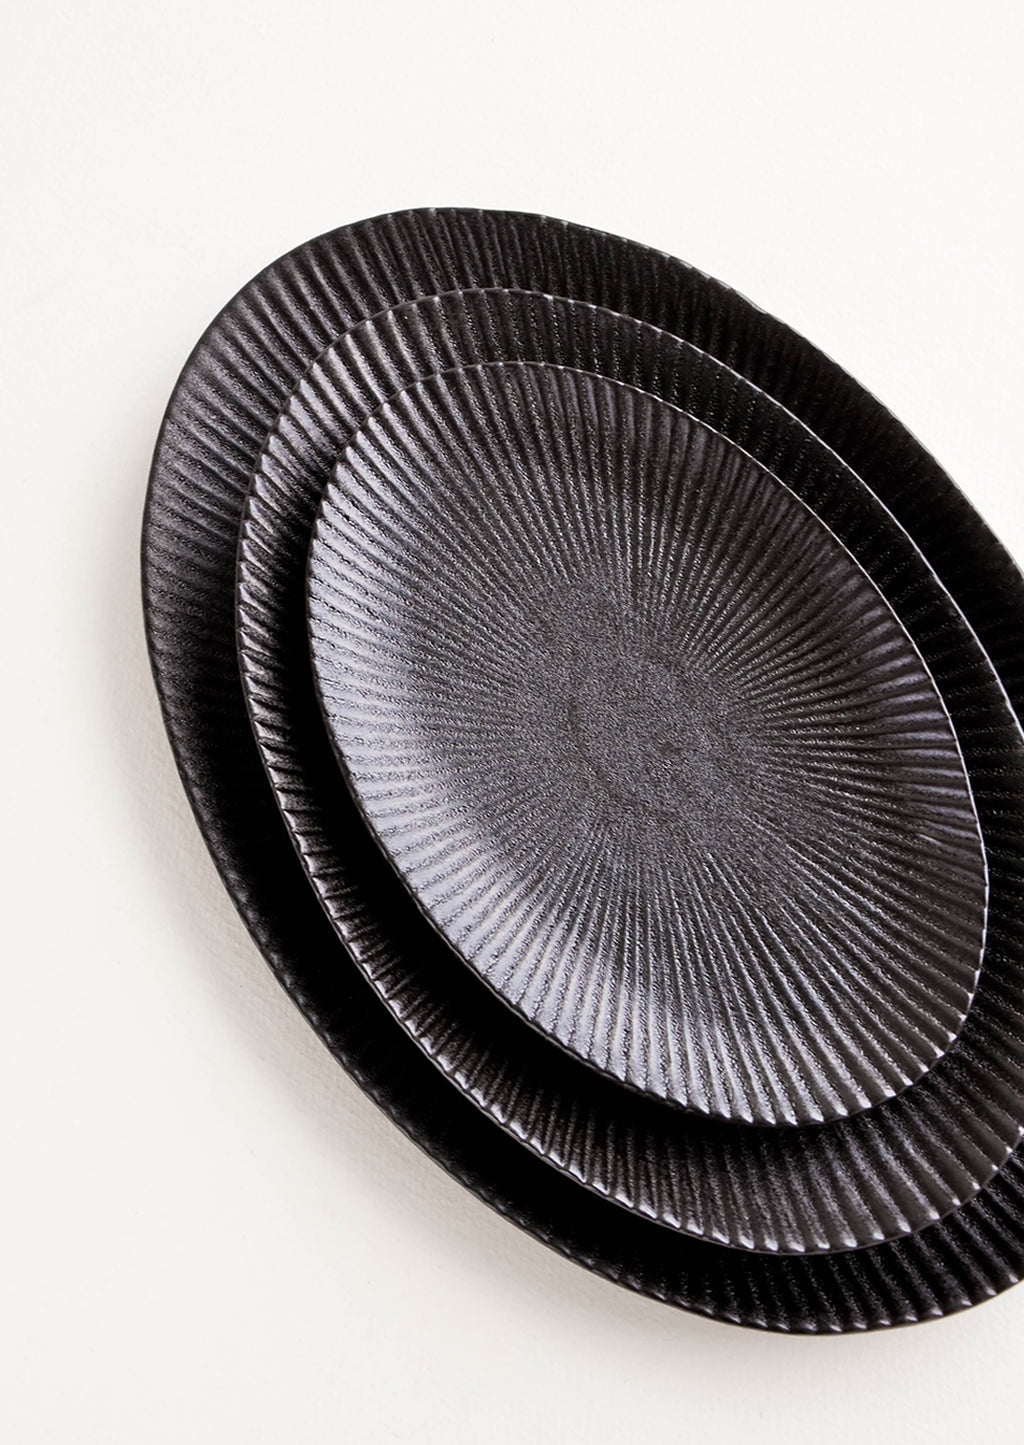 2: Oval-shaped, black ceramic trays with radiating lines pattern stacked in incremental sizes